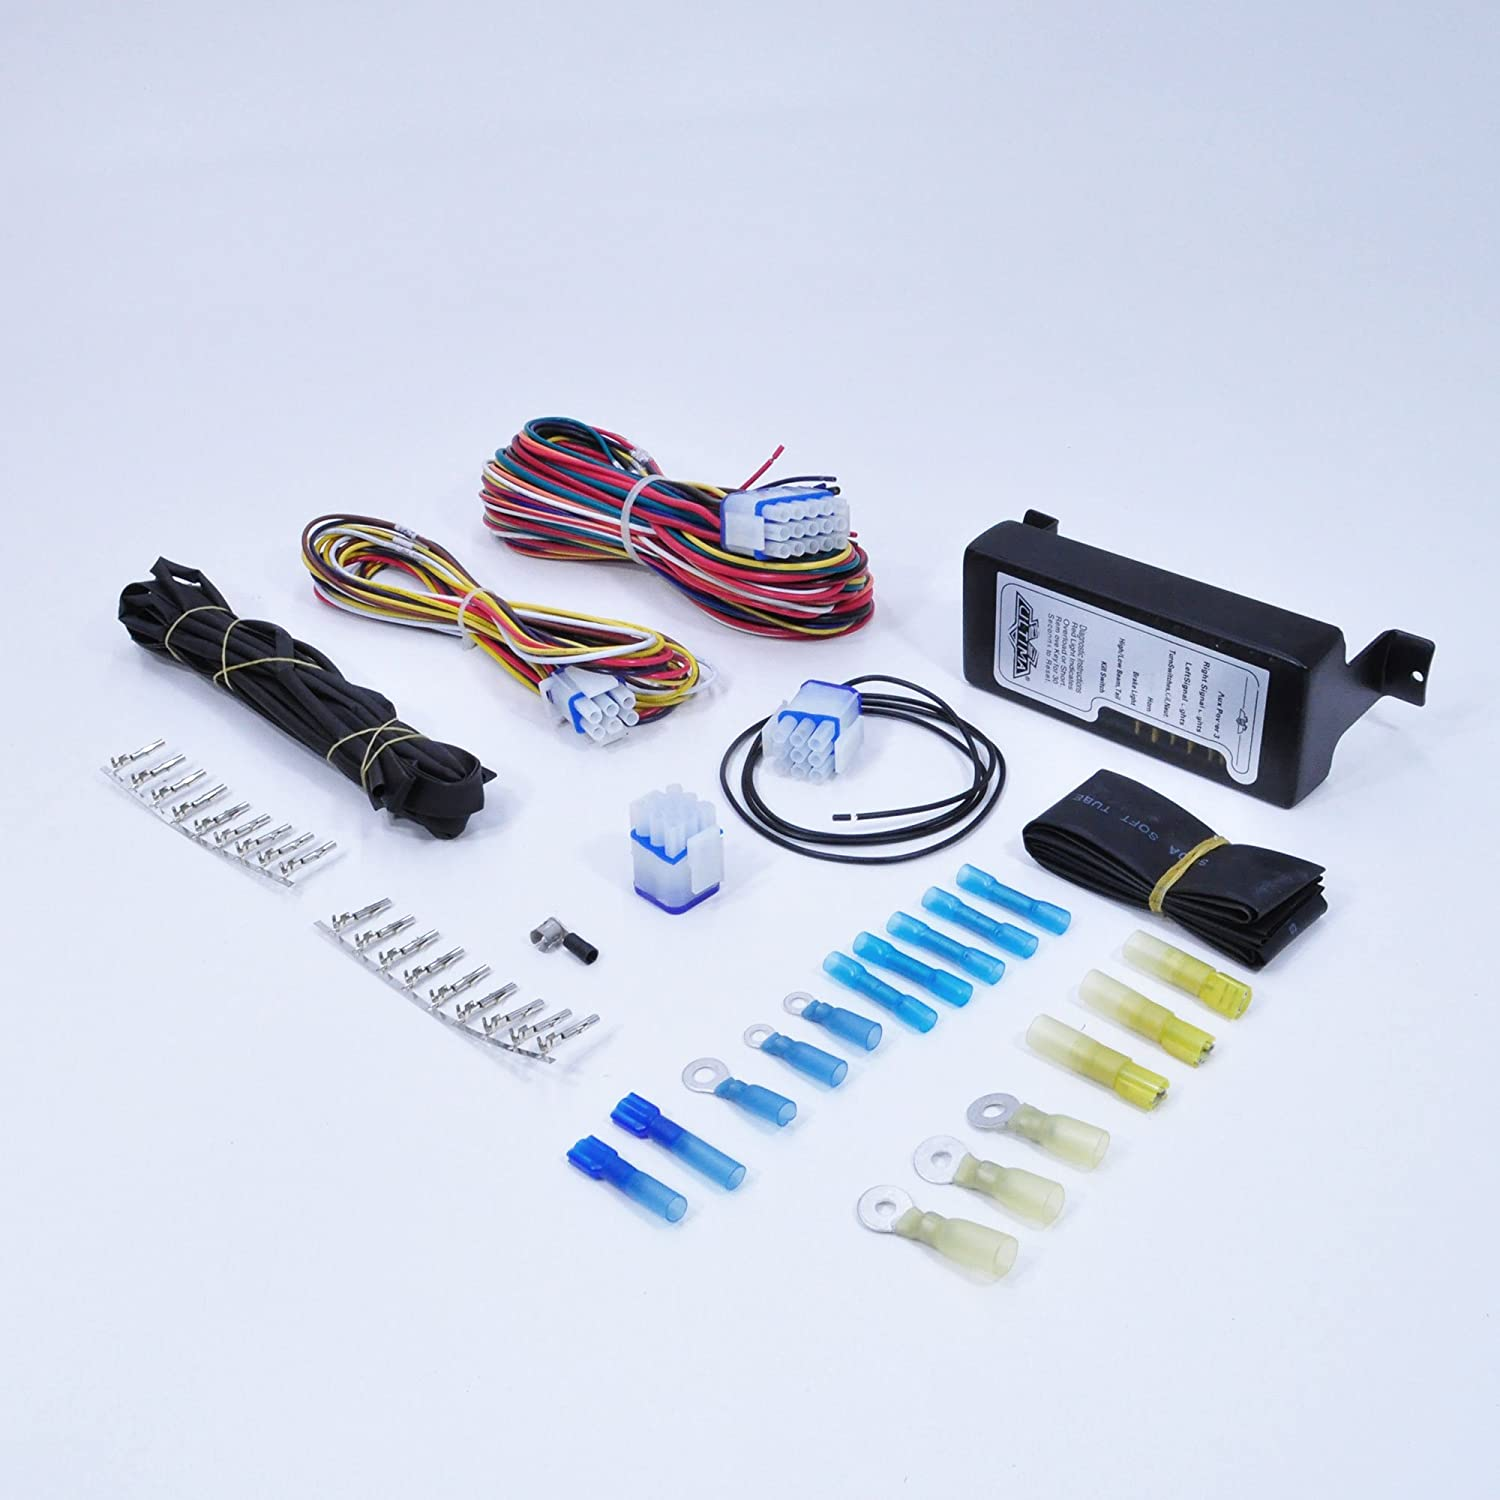 Complete Motorcycle Wiring Harness Kit Electrical System - Waterproof on relay lights, relay coil, relay computer, relay parts, relay switch, relay connections,